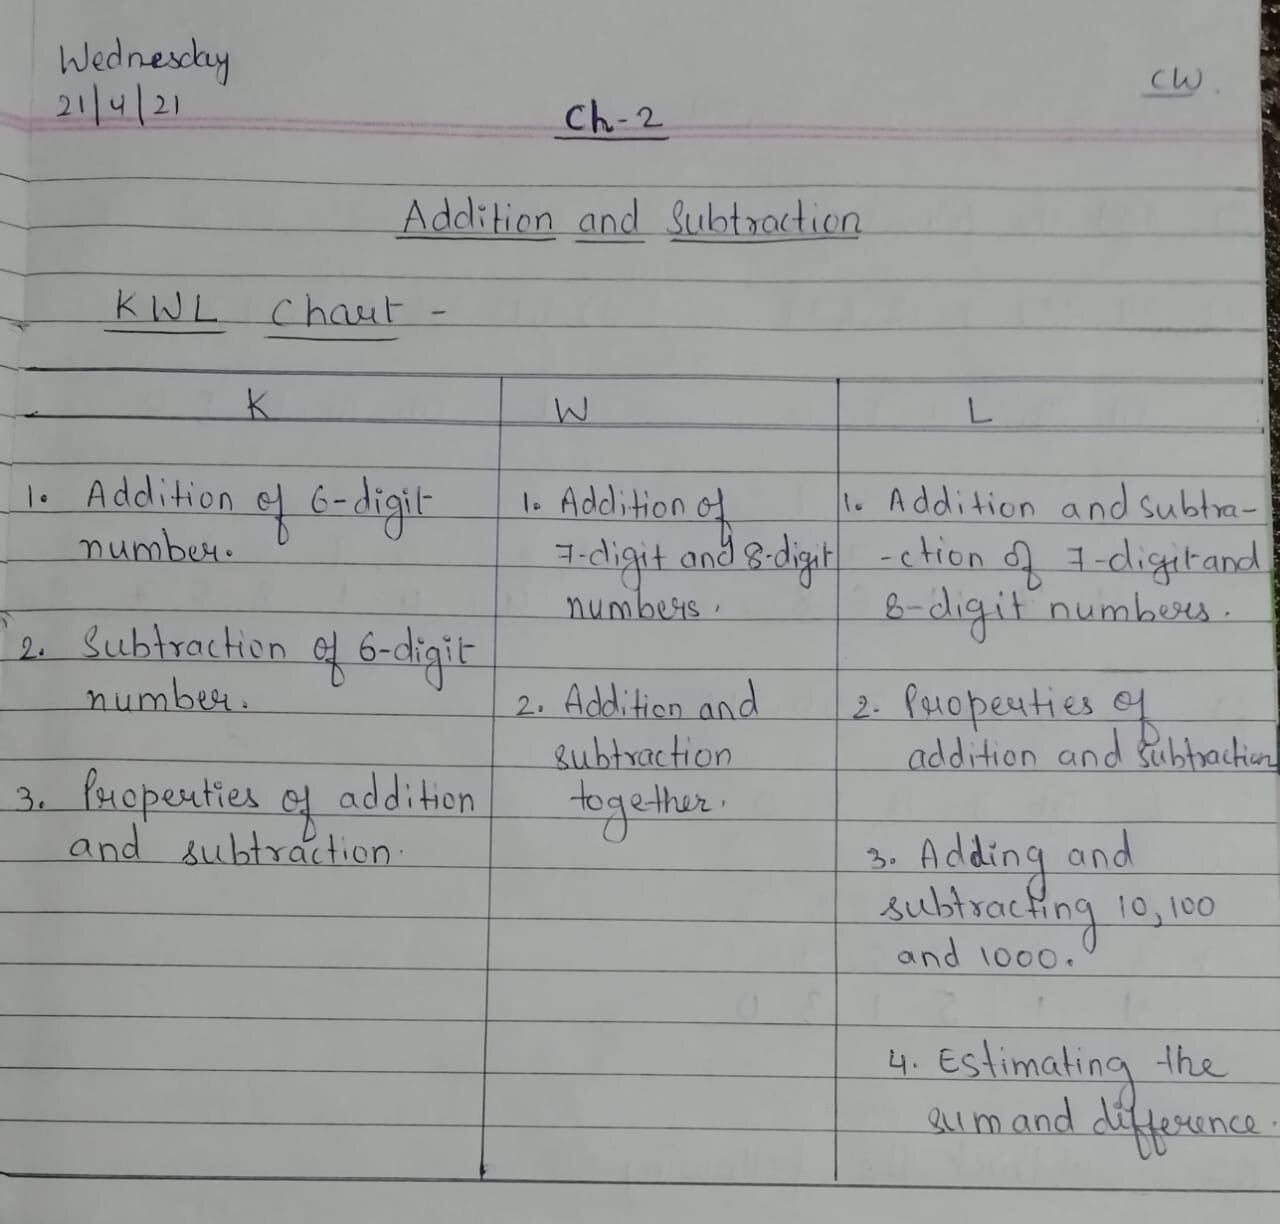 medium resolution of Grade 5 Math Chapter-2 Addition and Subtraction Notebook Work